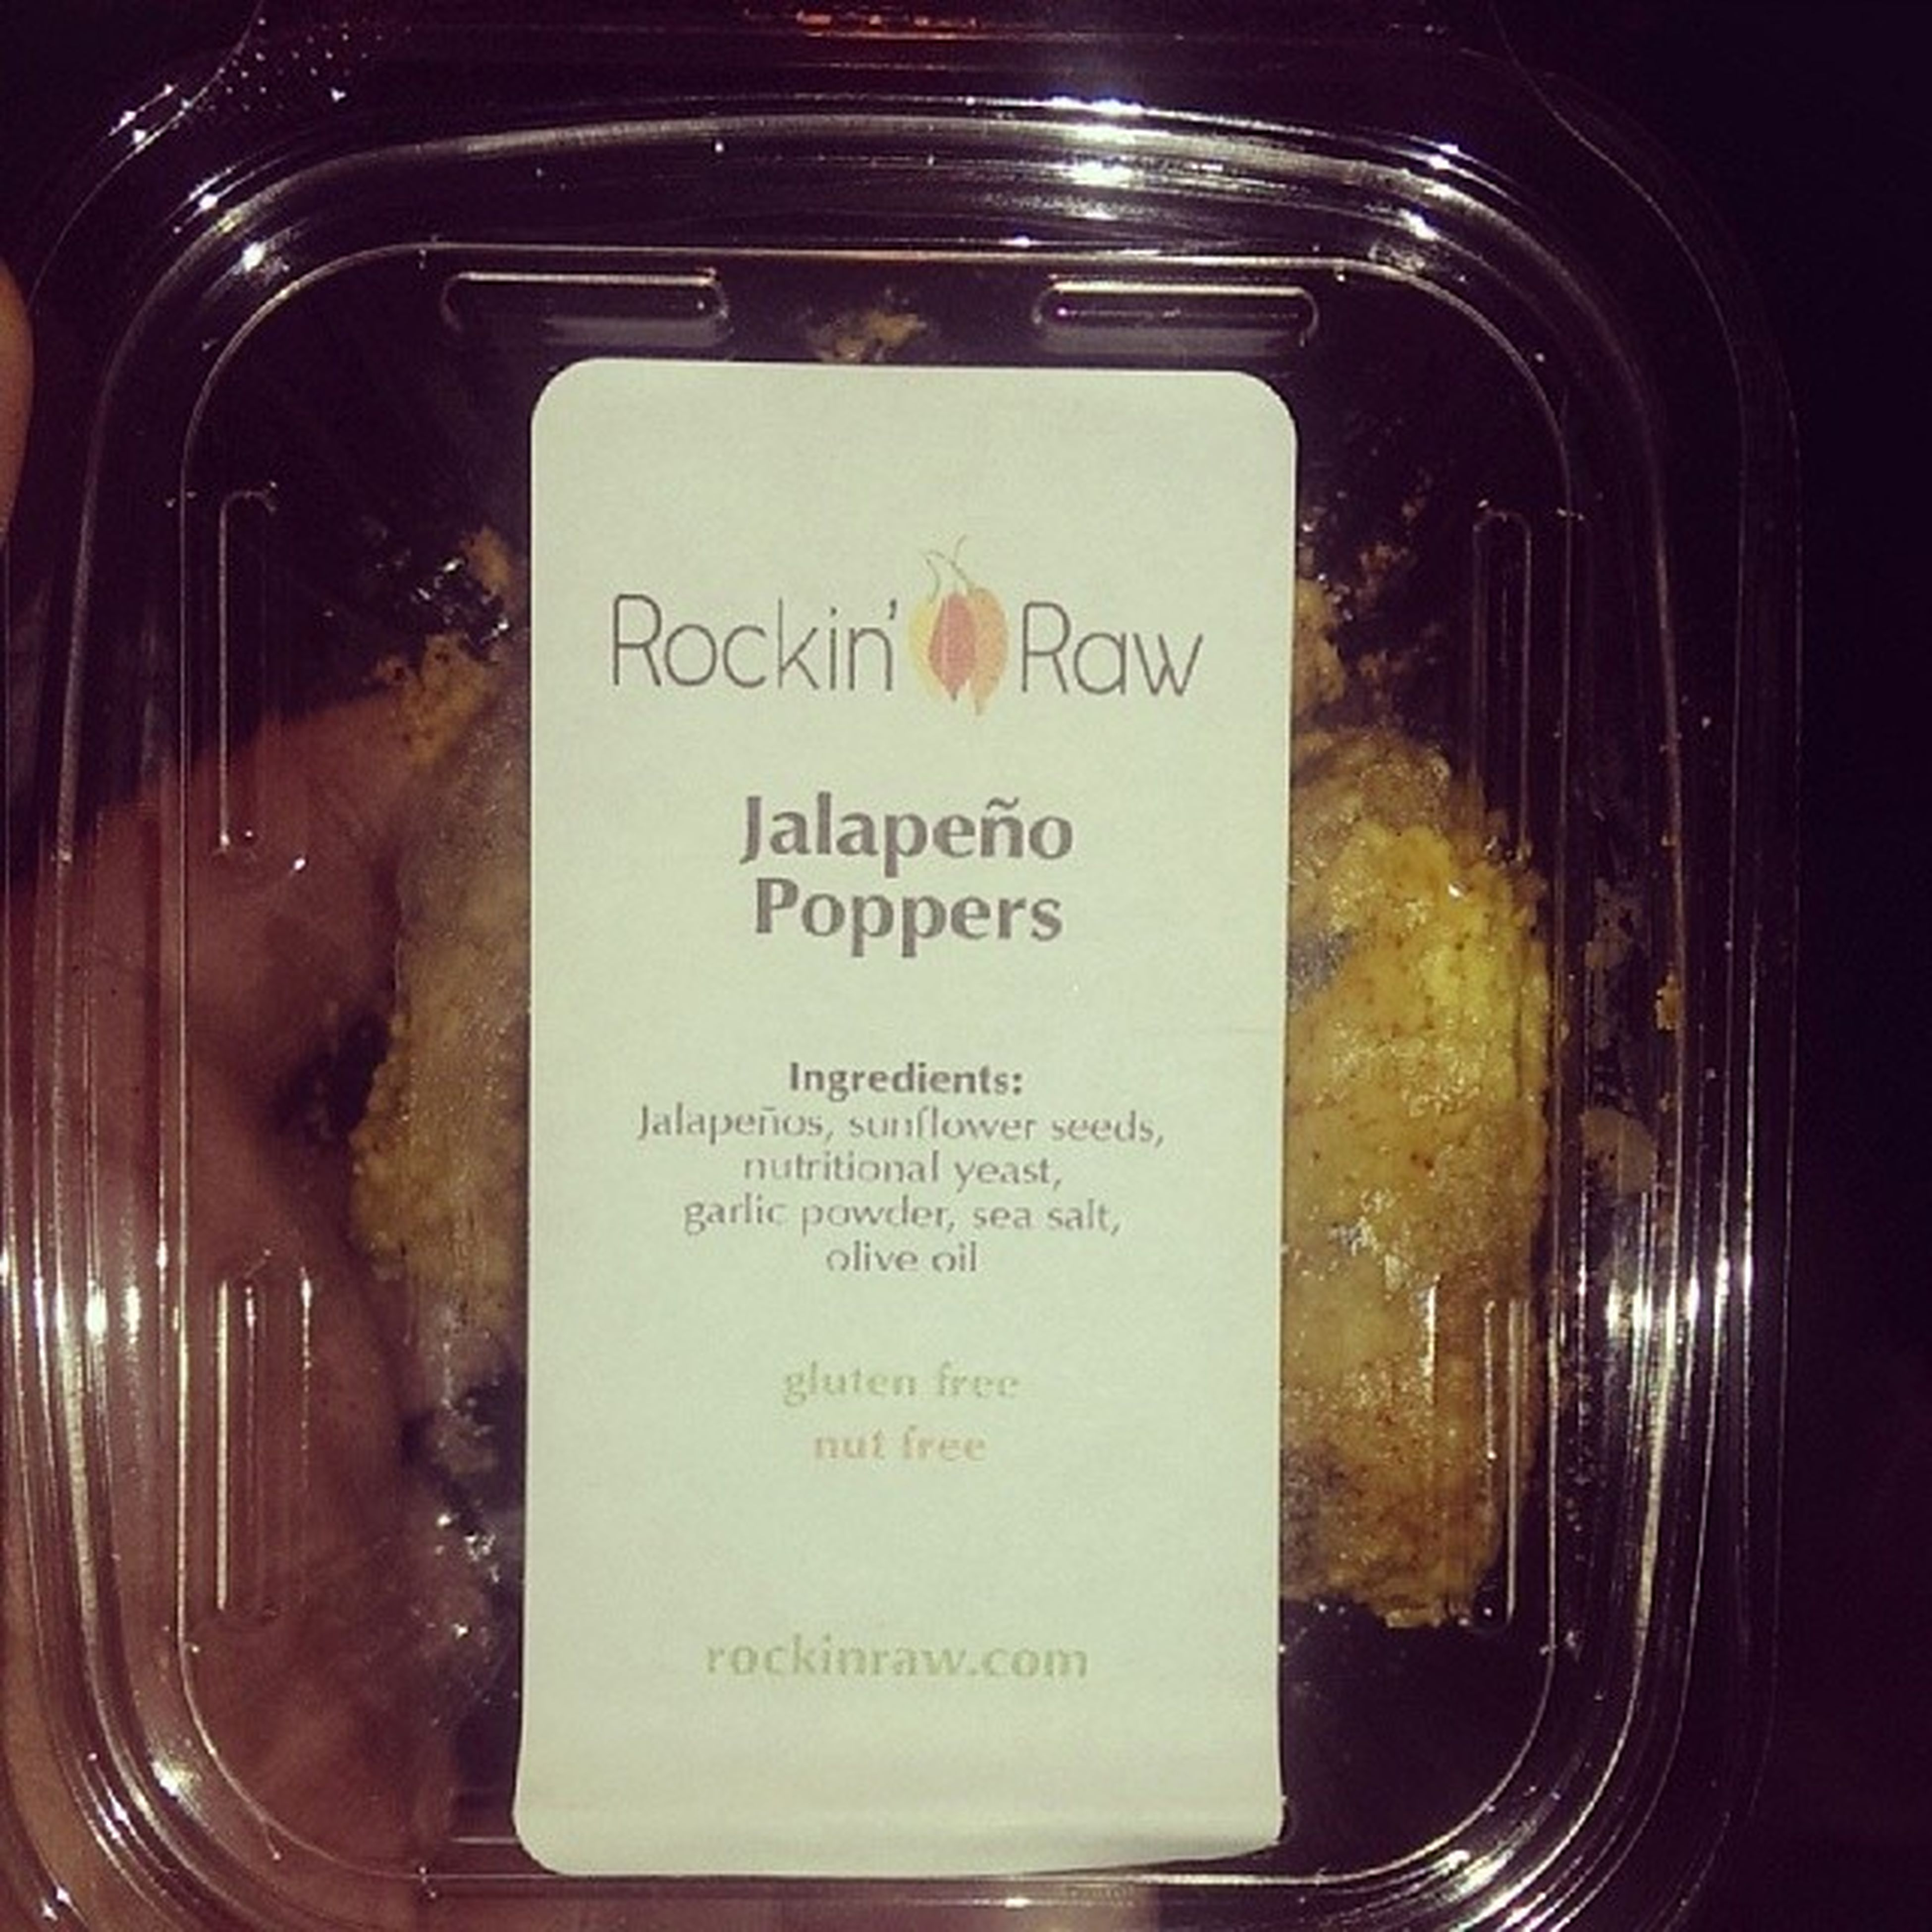 Just came back from my the lower east side's vegan paradise Liveliveandorganic and this is my first treat from Rockinraw that I picked up there! Yumm